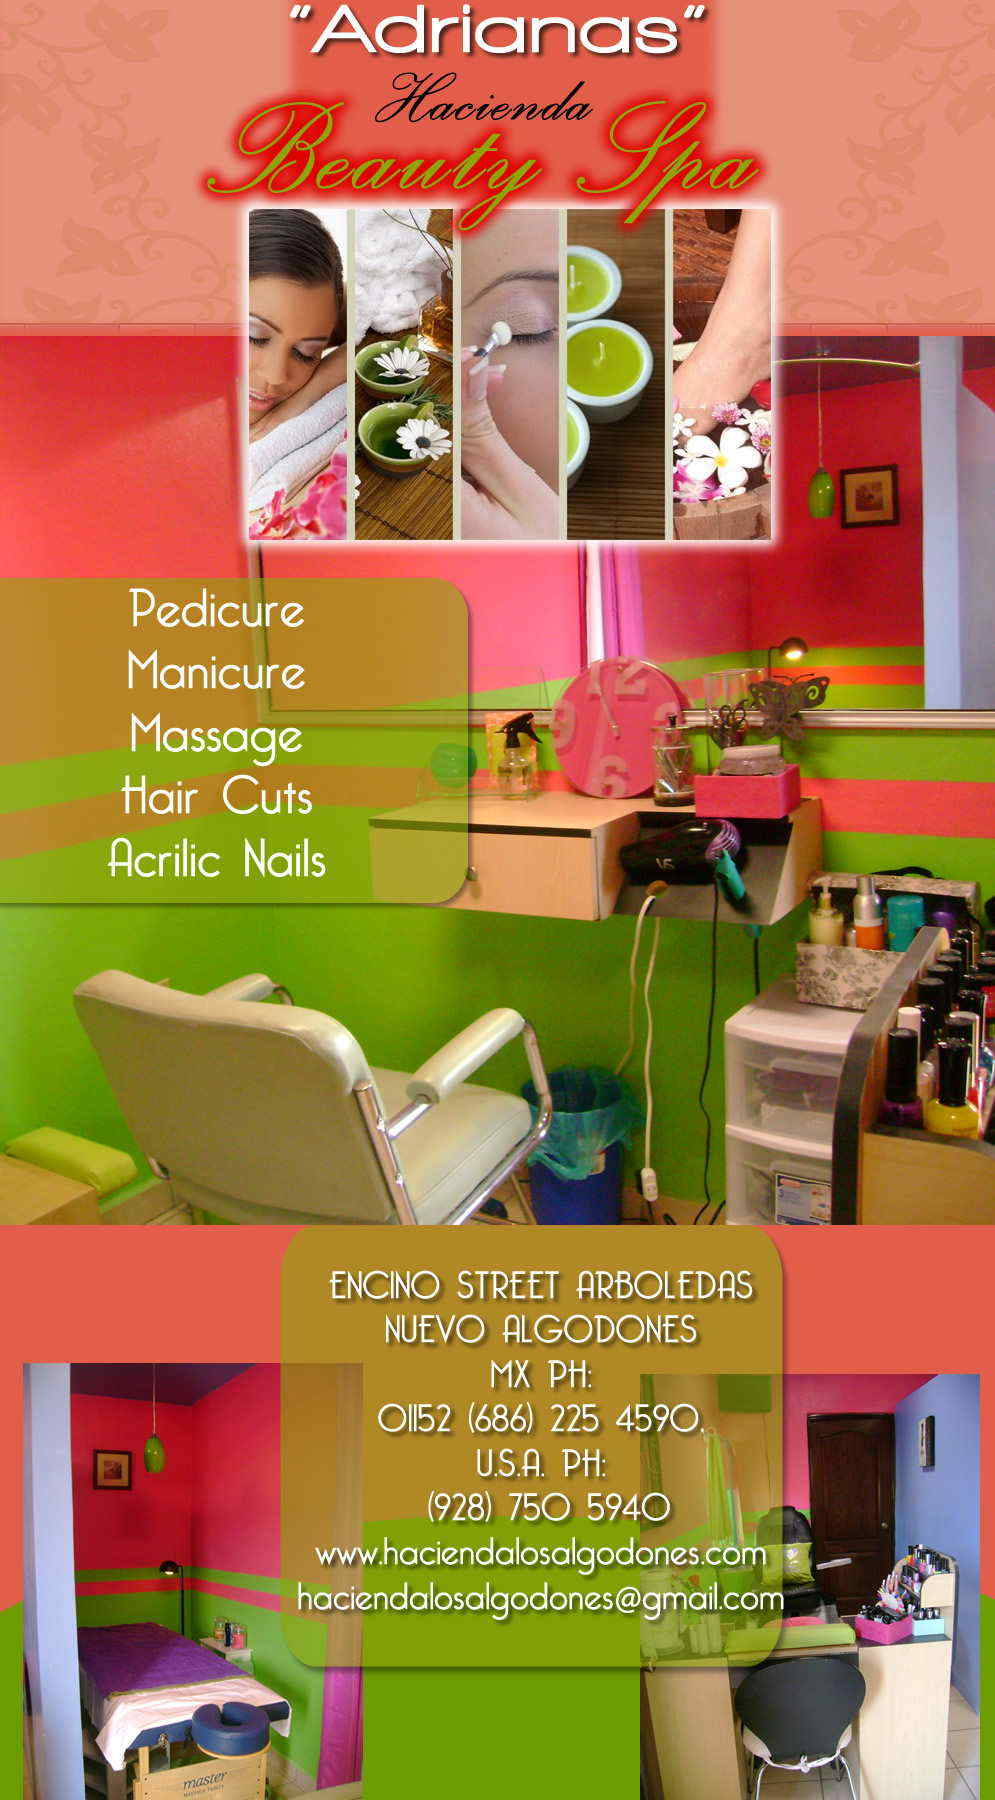 ADRIANAS HACIENDA BEAUTY SPA in Algodones  in Algodones  BEAUTY SPA PEDICURE MANICURE MASSAGES HAIR CUTS ACRILIC NAILS